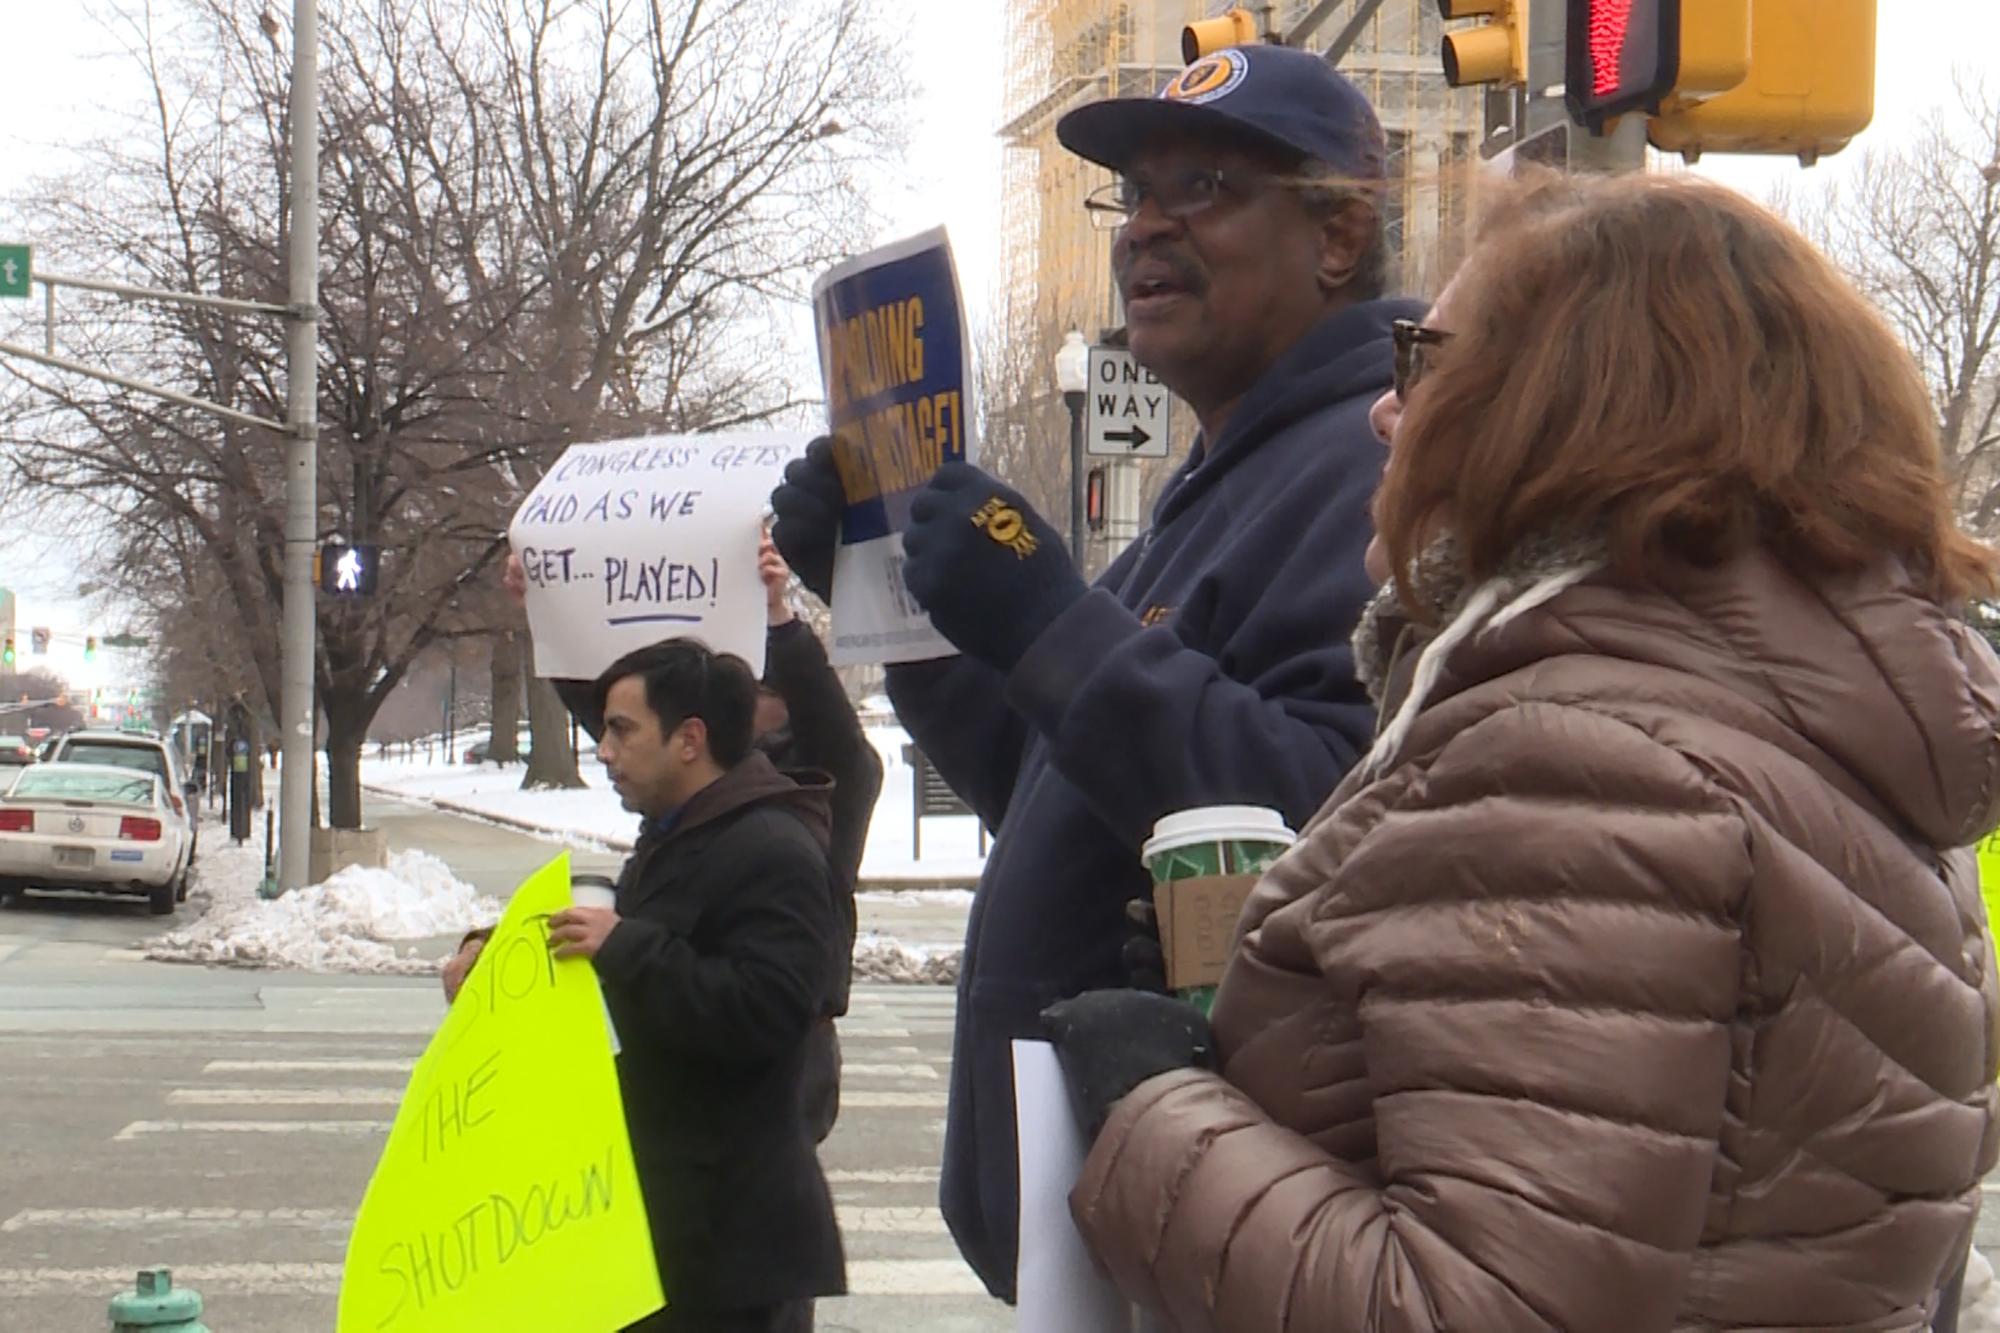 Local Governments, Charities Brainstorm Ways To Help Furloughed Workers